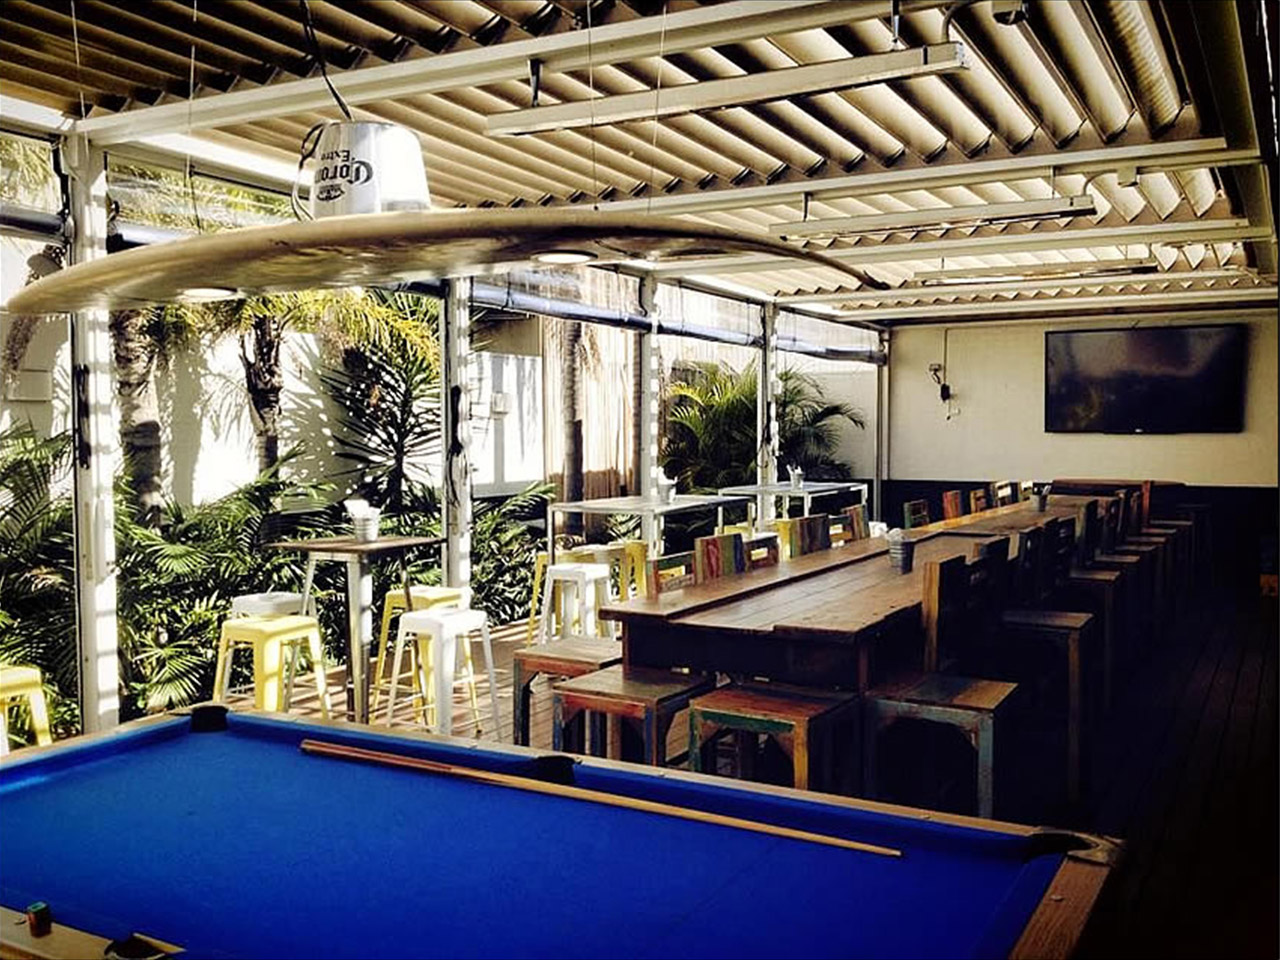 Long Table with chairs and a Billiard and a Surf Board in the Ceiling